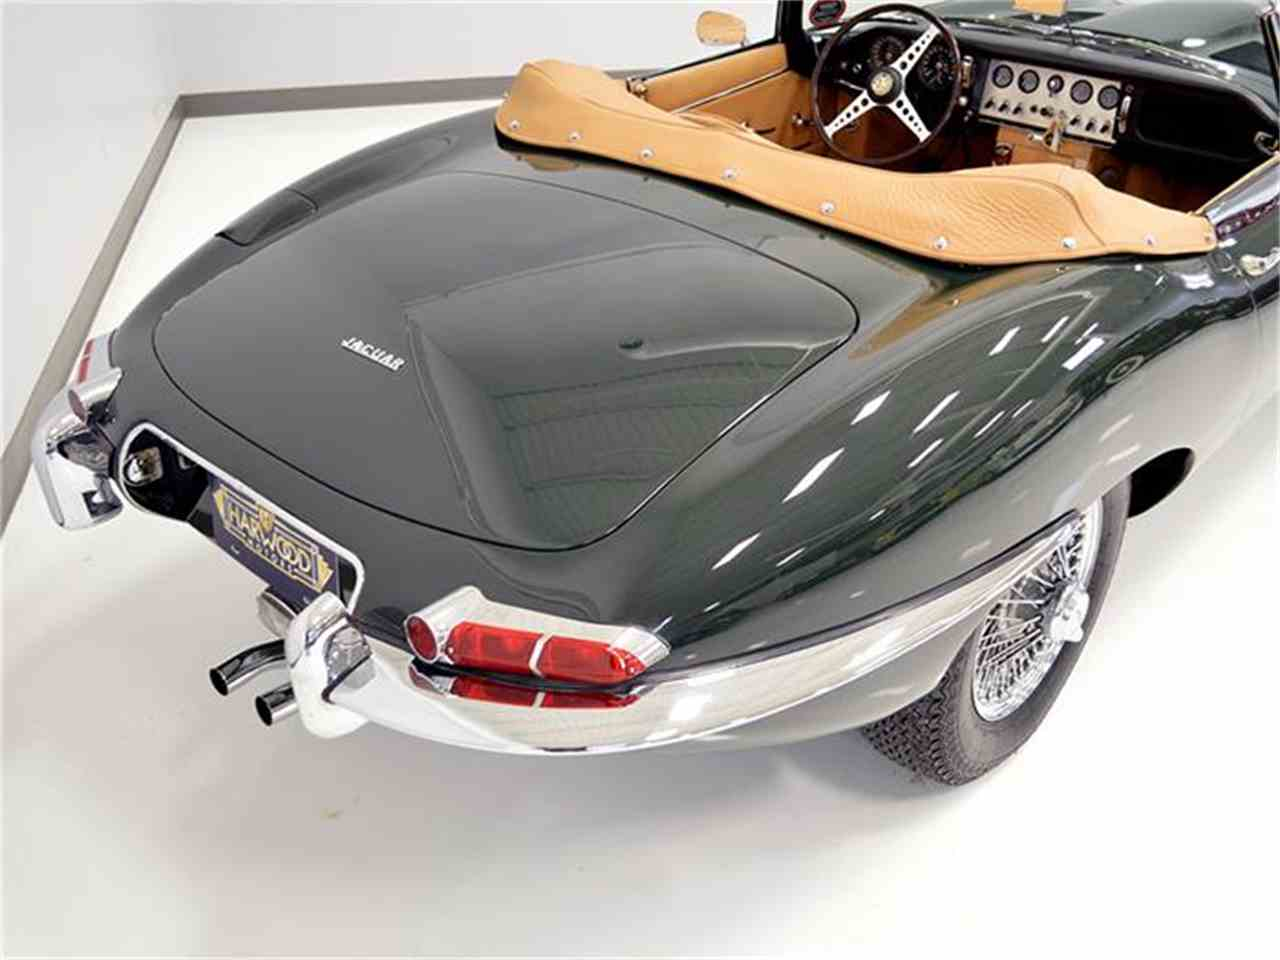 Large Picture of Classic '63 Jaguar E-Type Offered by Harwood Motors, LTD. - GI64